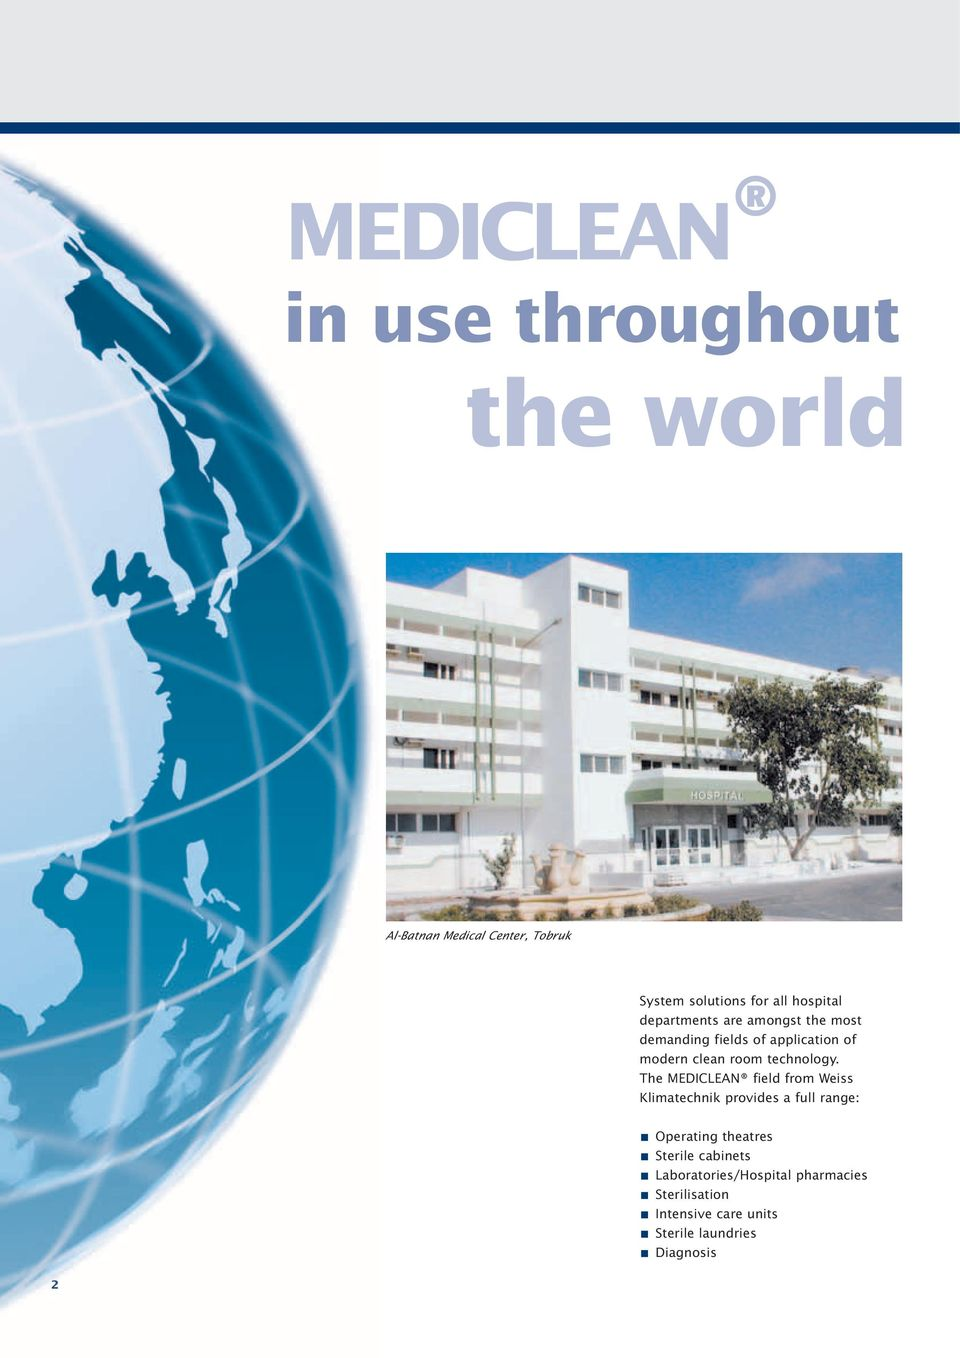 The MEDICLEAN field from Weiss Klimatechnik provides a full range: Operating theatres Sterile